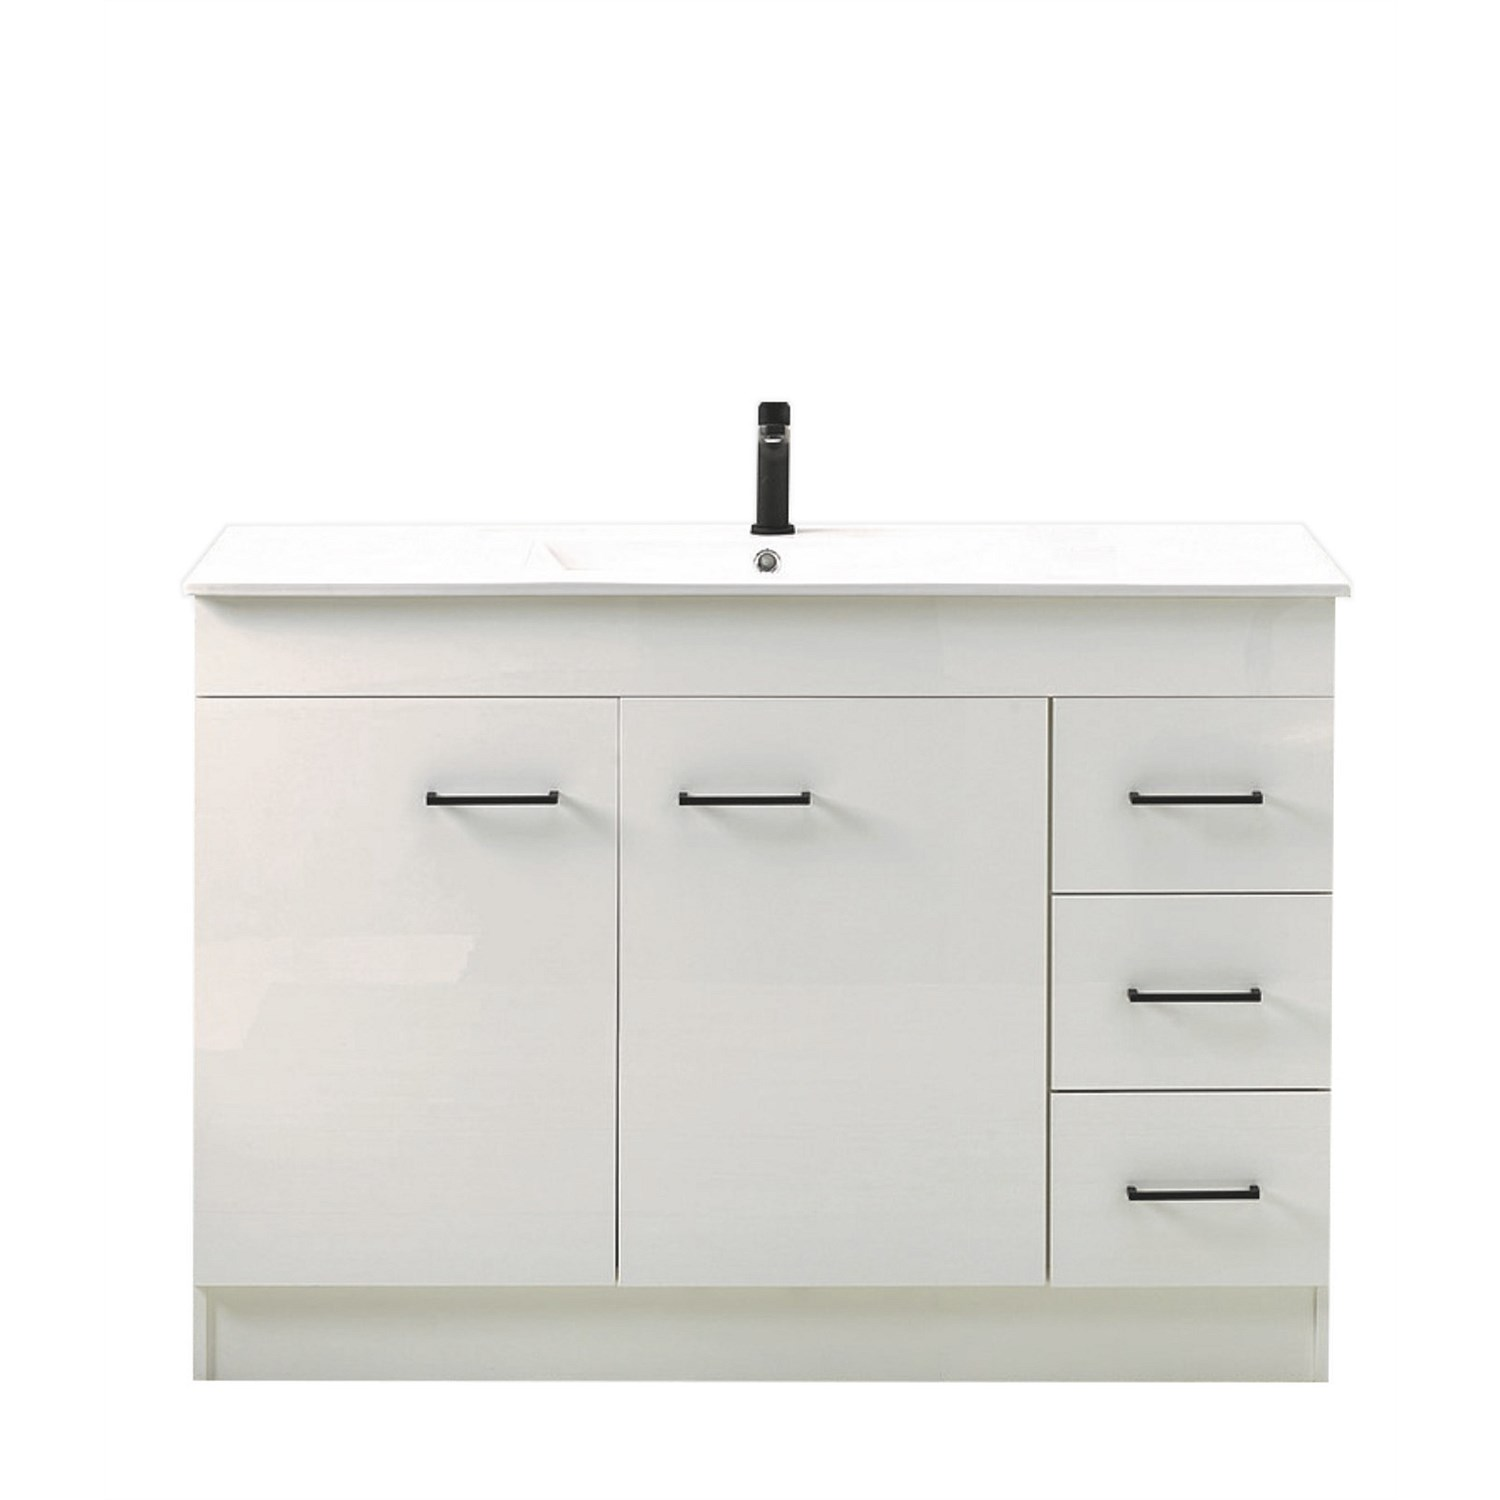 Vanities And Storage Clearlite Cashmere 1200mm Classic